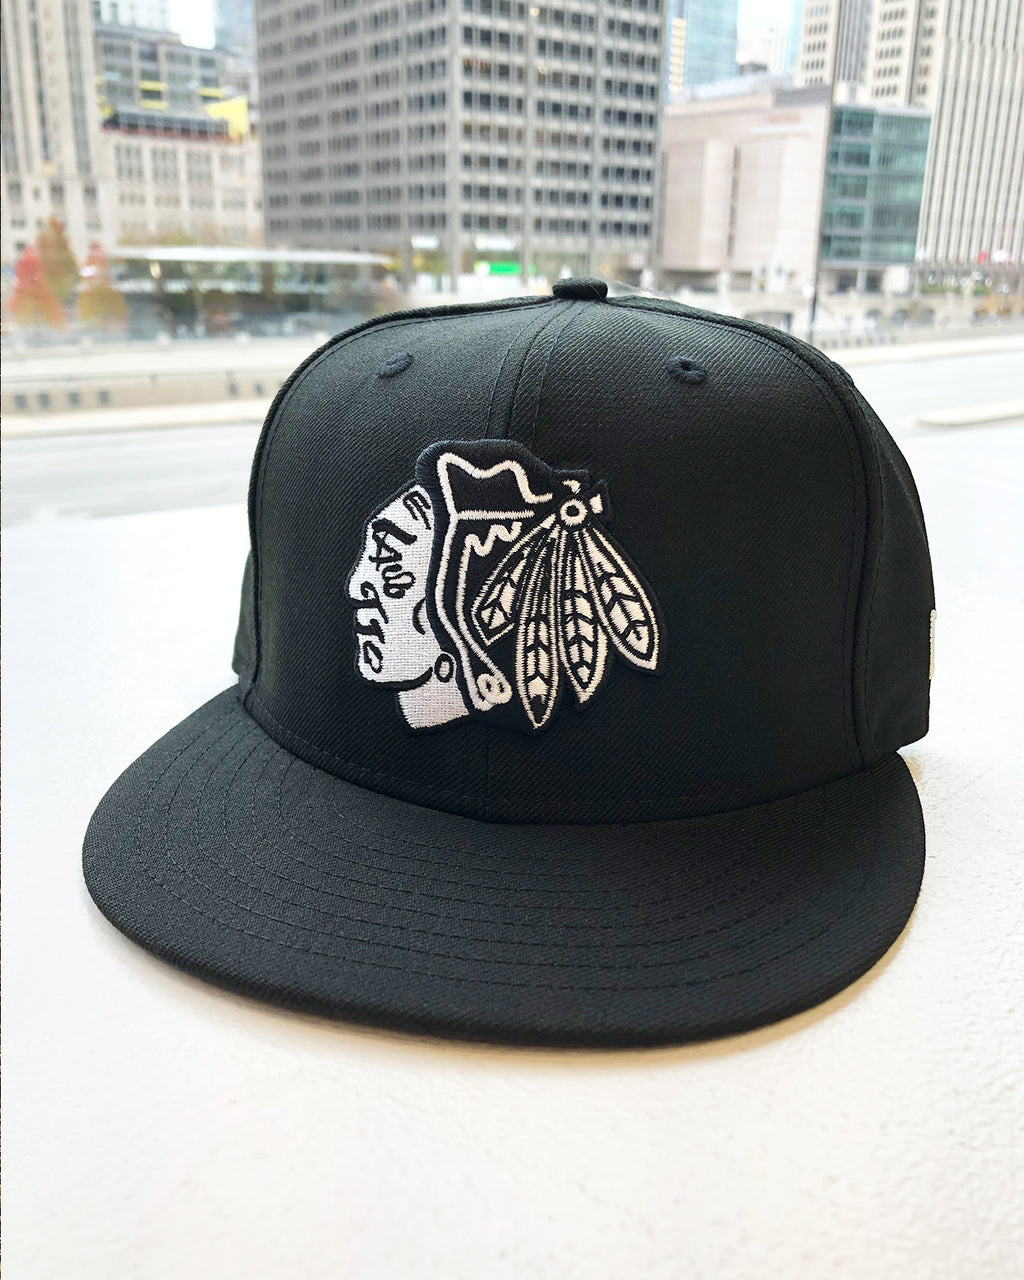 New Era Black & White Fitted Cap